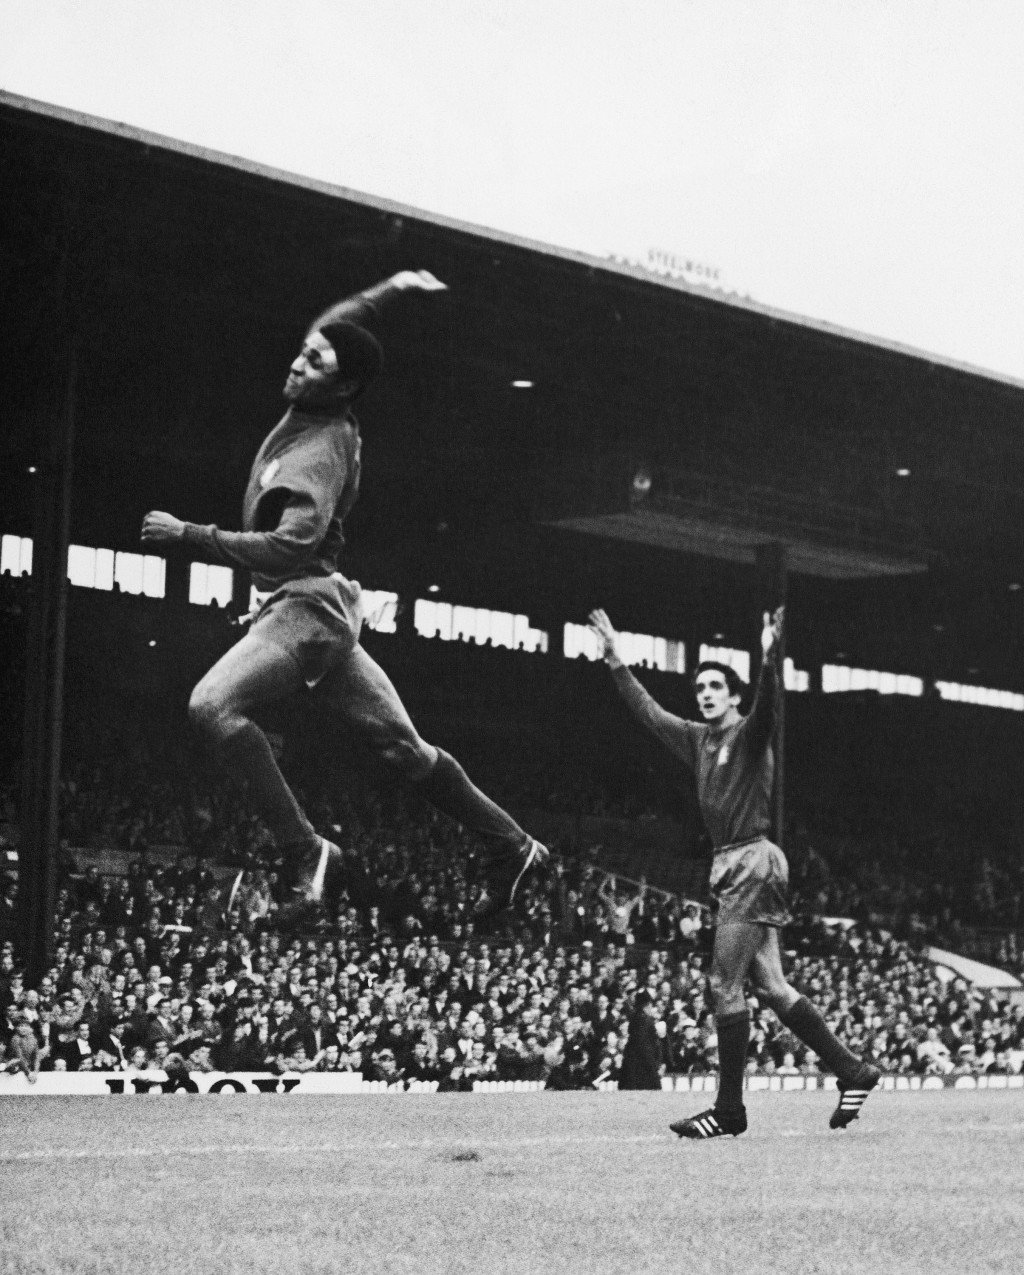 FILE - In this July 16, 1966 file photo, Eusebio jumps high after scoring Portugal's second goal in their World Cup soccer match against Bulgaria in M...